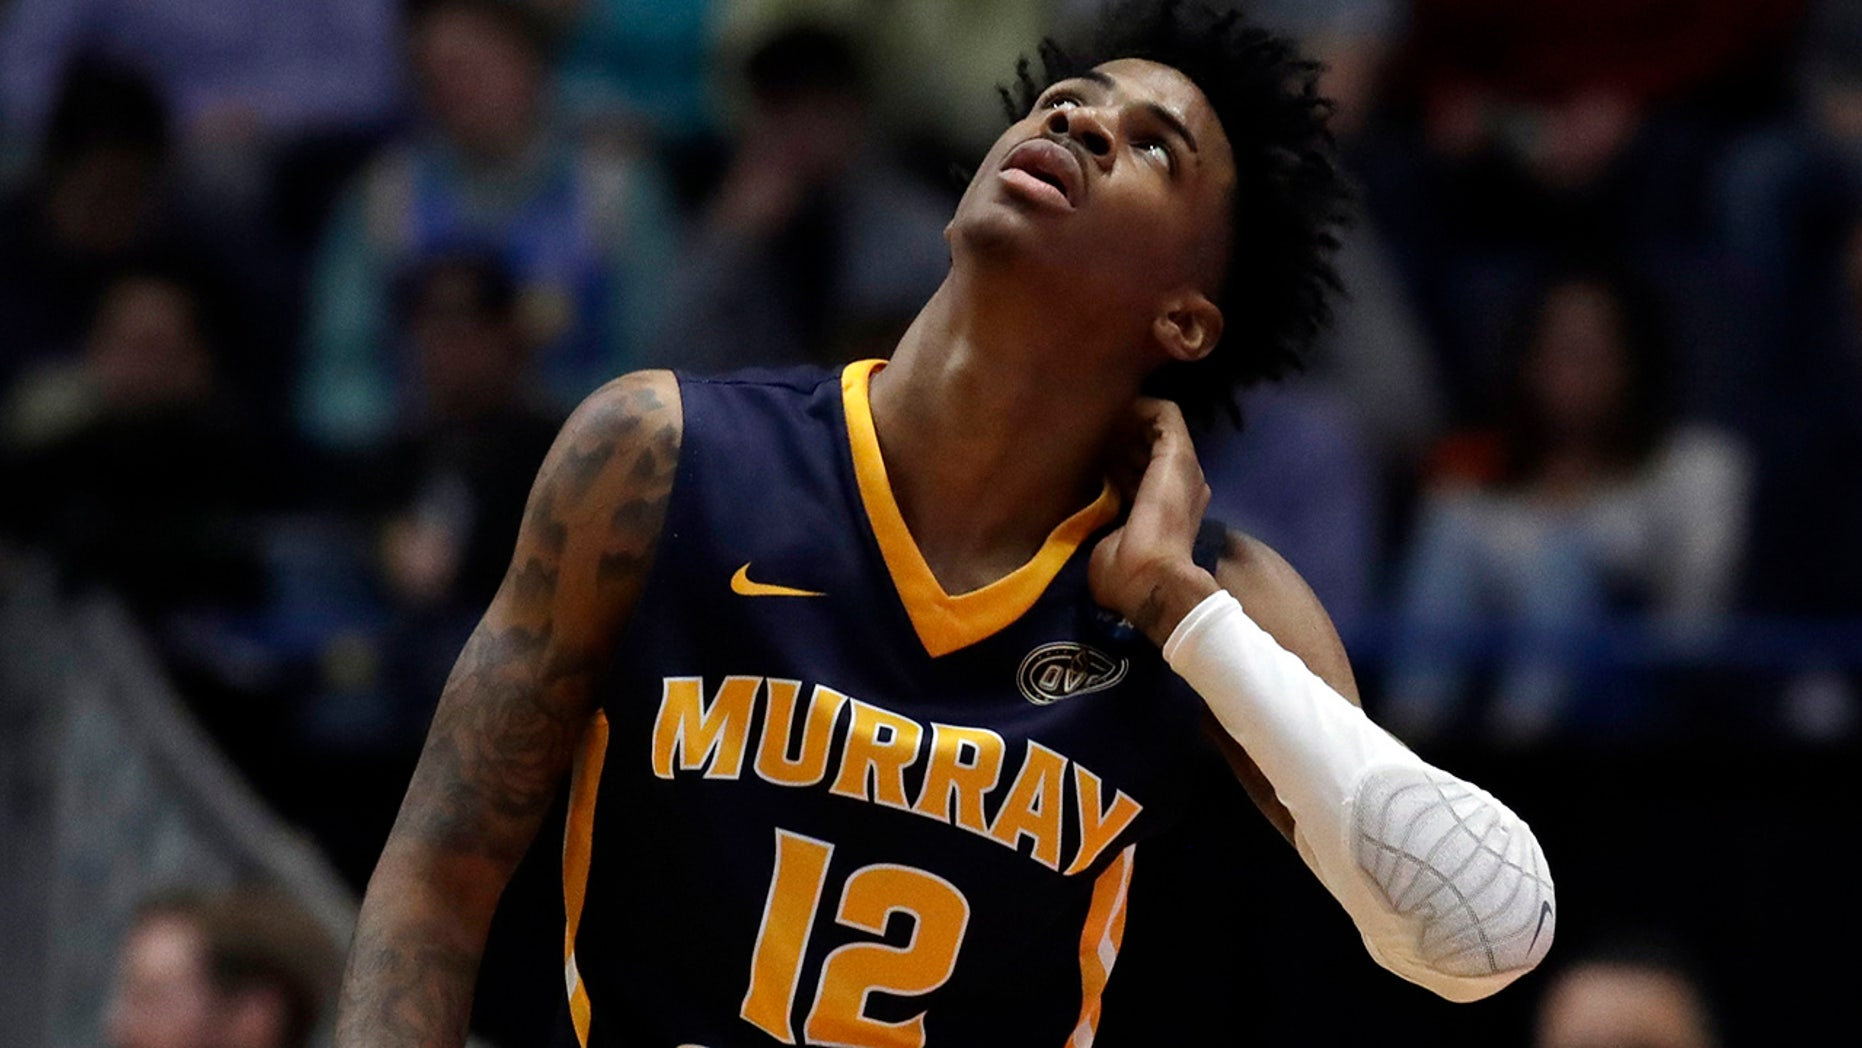 Murray State's Ja Morant (12) looks up at the scoreboard during the first half of a second-round men's college basketball game against Florida State in the NCAA Tournament, Saturday, March 23, 2019, in Hartford, Conn. (Associated Press)